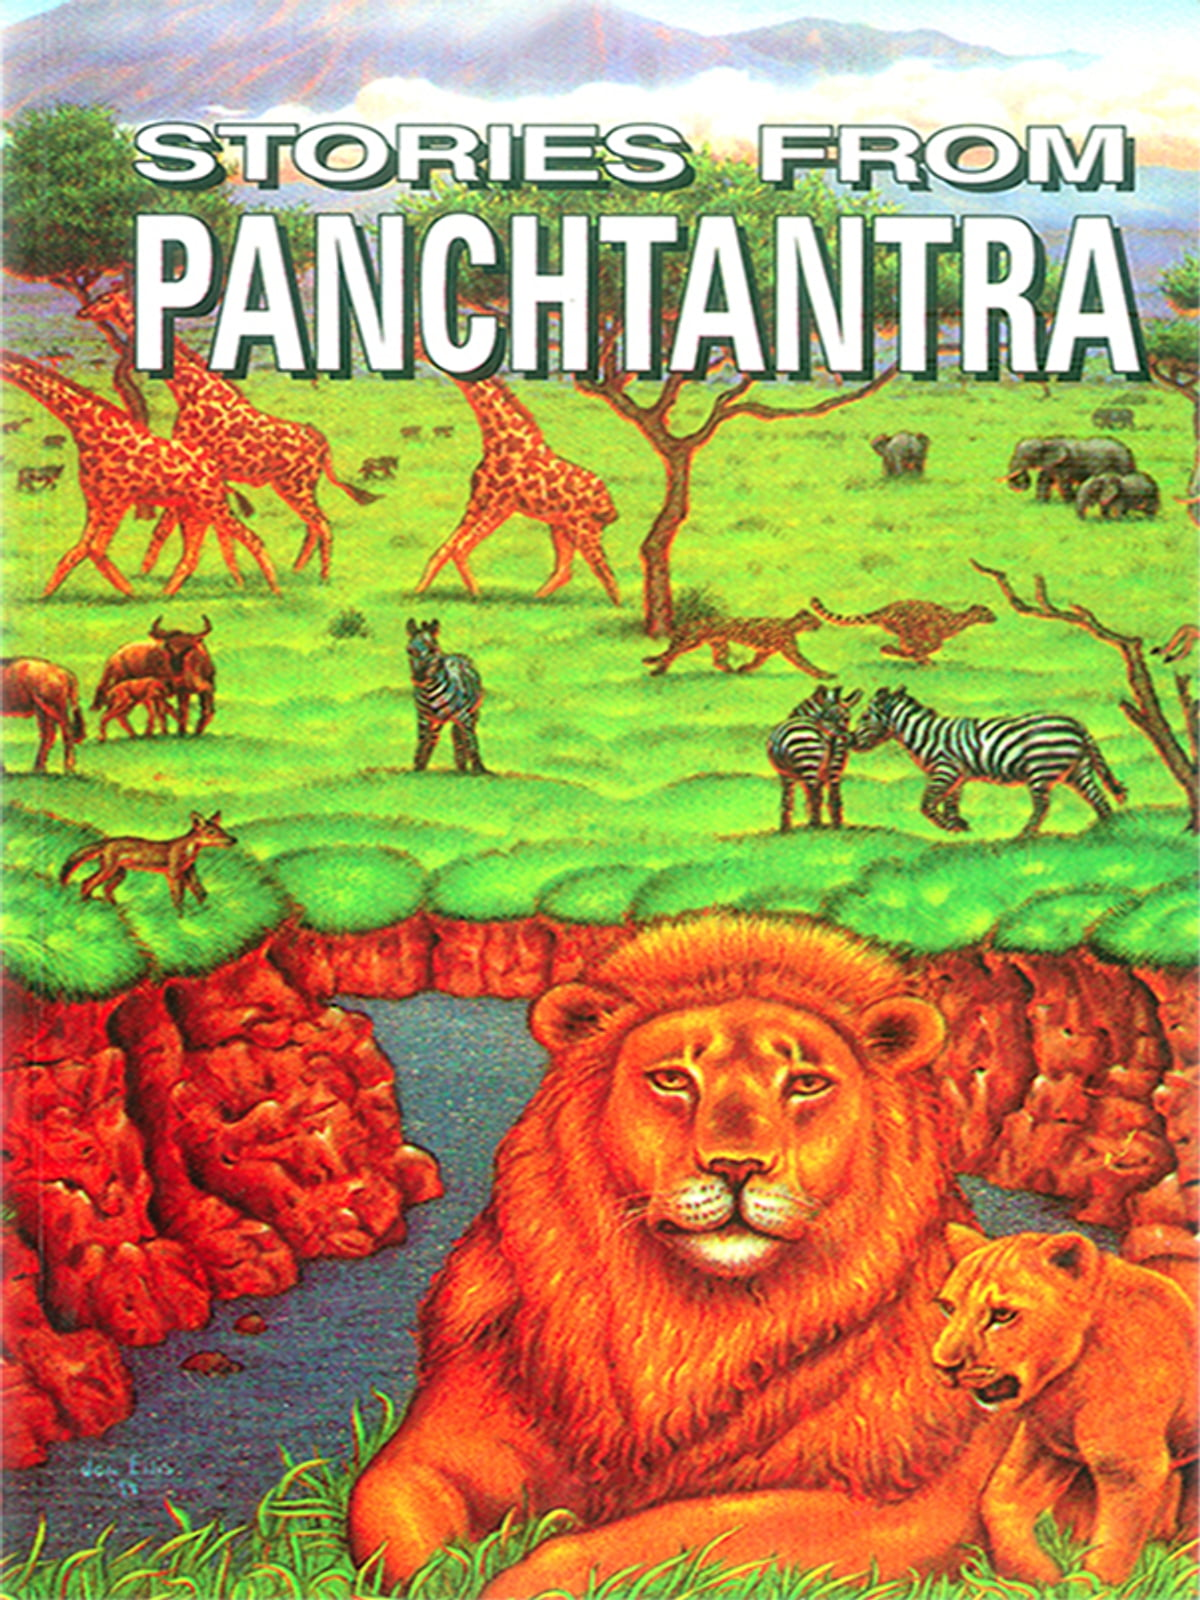 Stories From Panchtantra ebook by Purnima Mazumdar - Rakuten Kobo